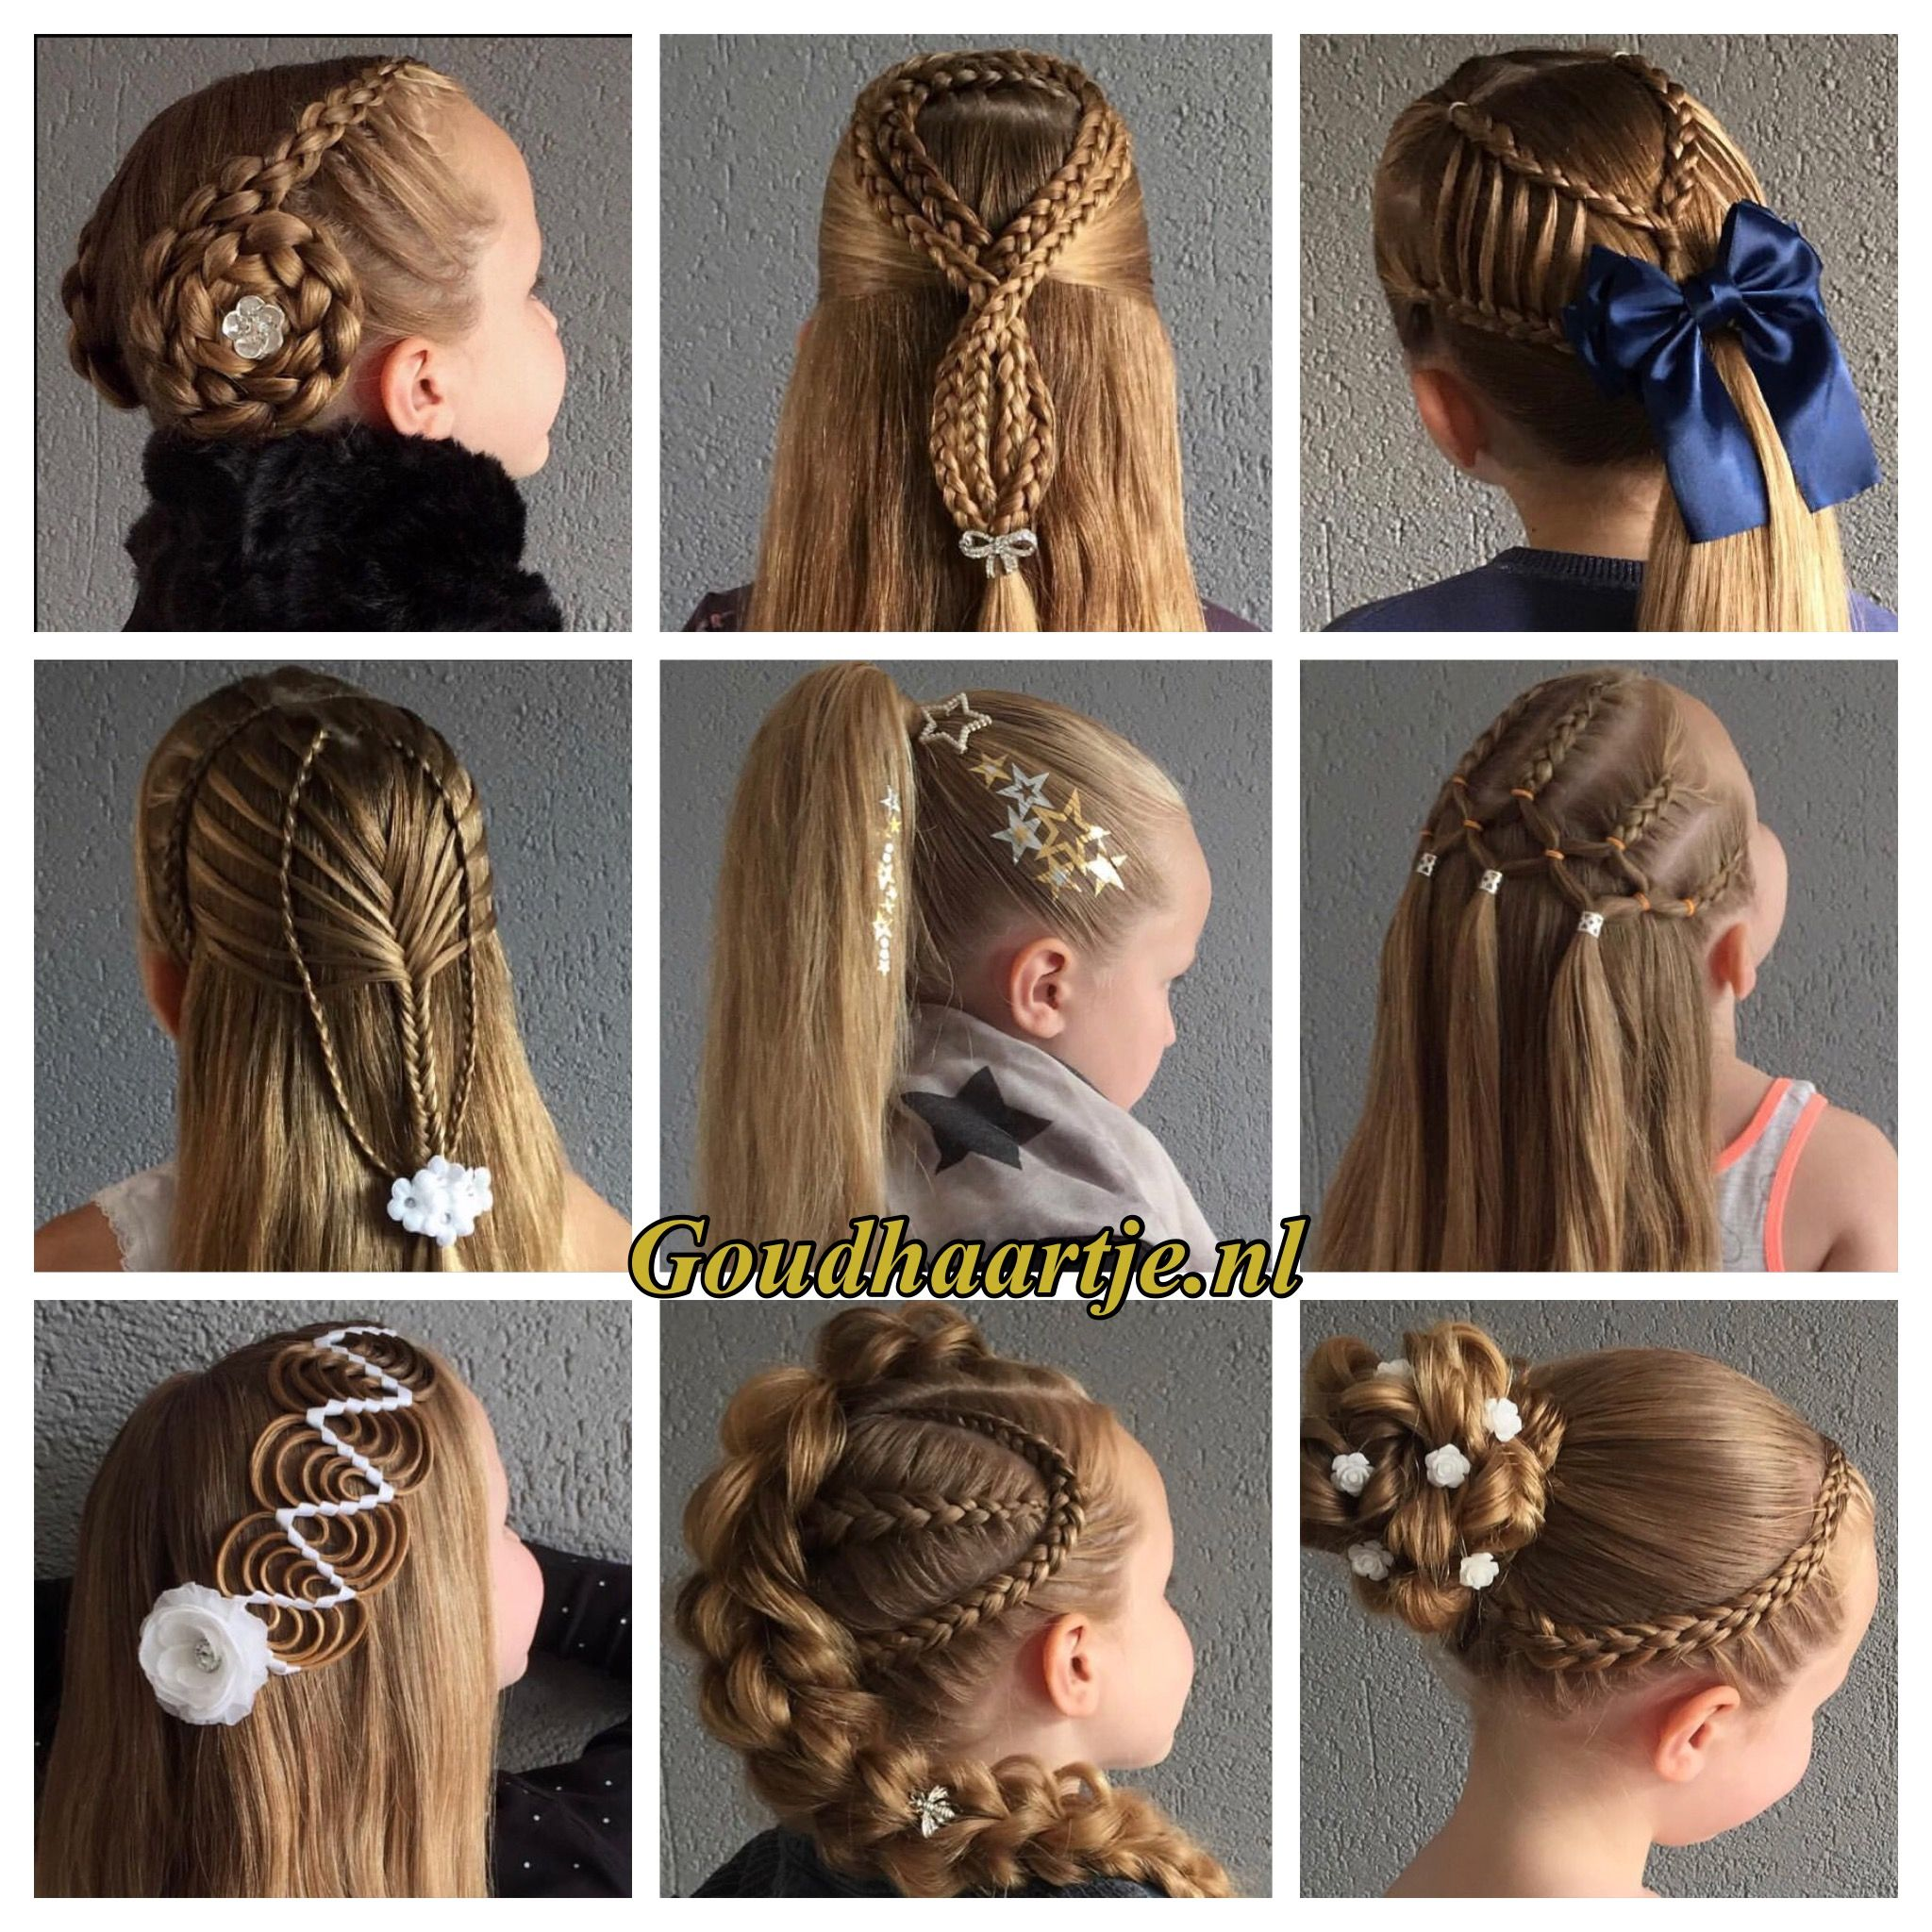 The hair accessories from the webshop goudhaartje worldwide